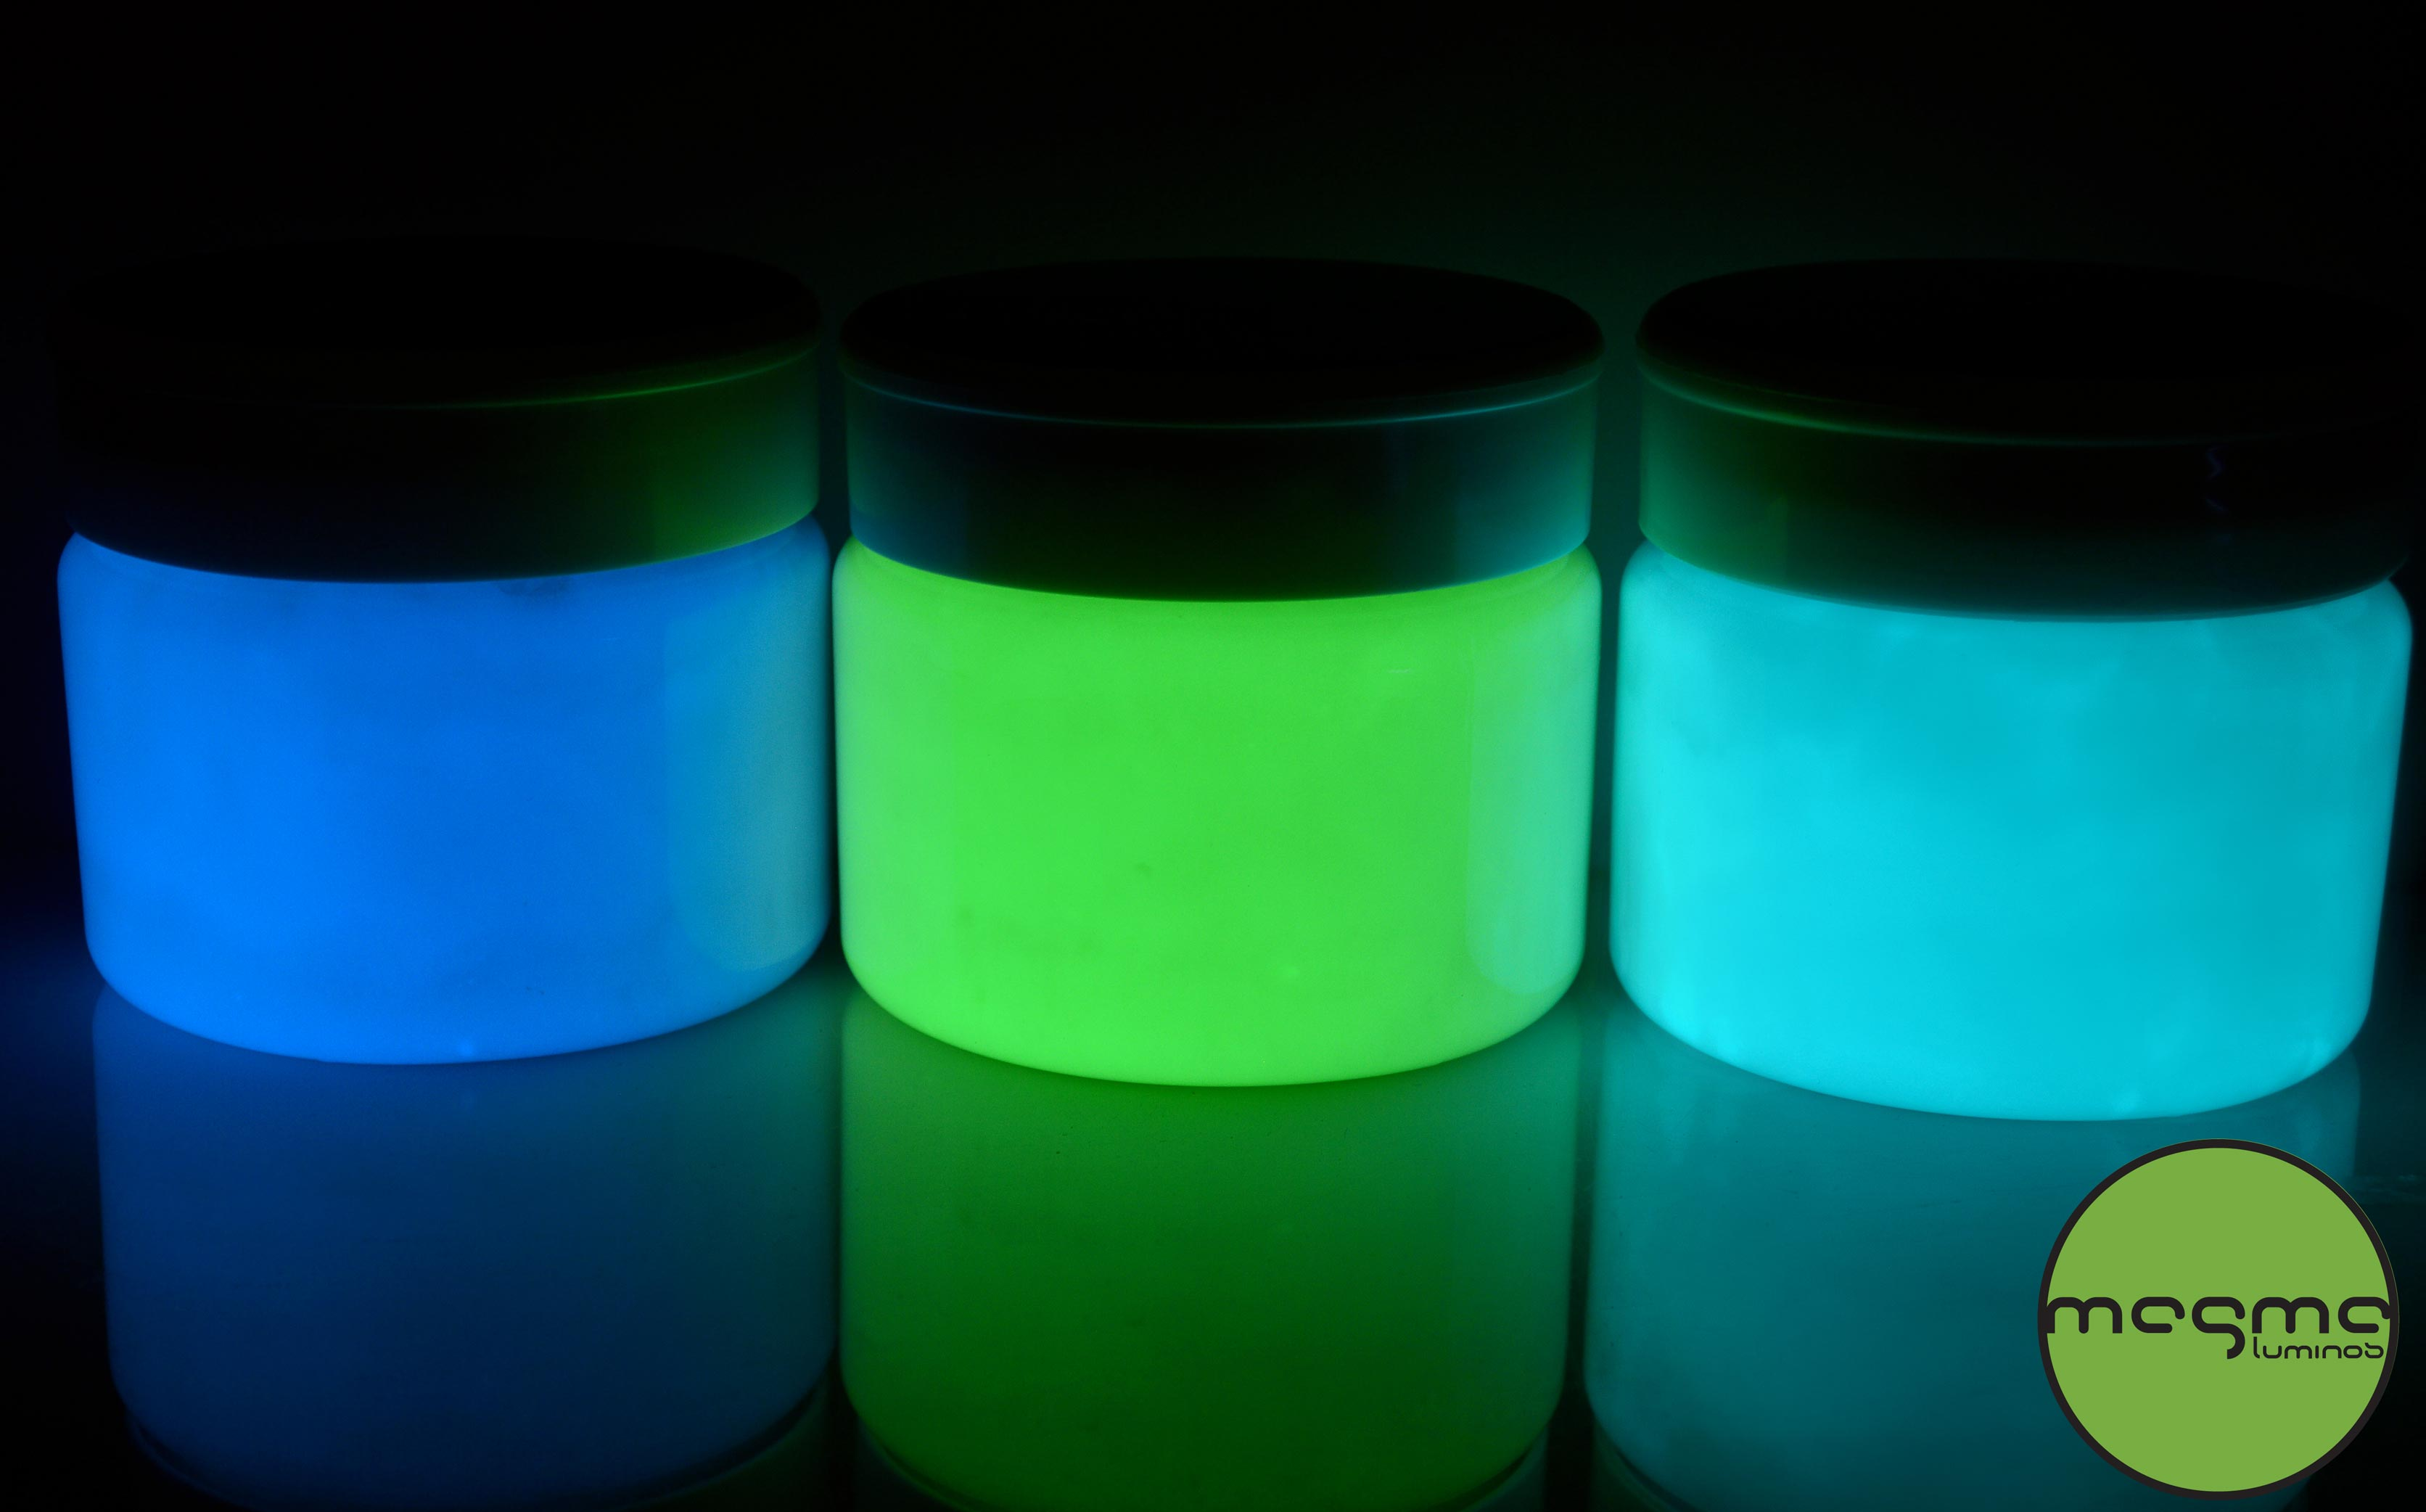 Magma Luminos Solvent Based 1 Supplier Glow Fosfor